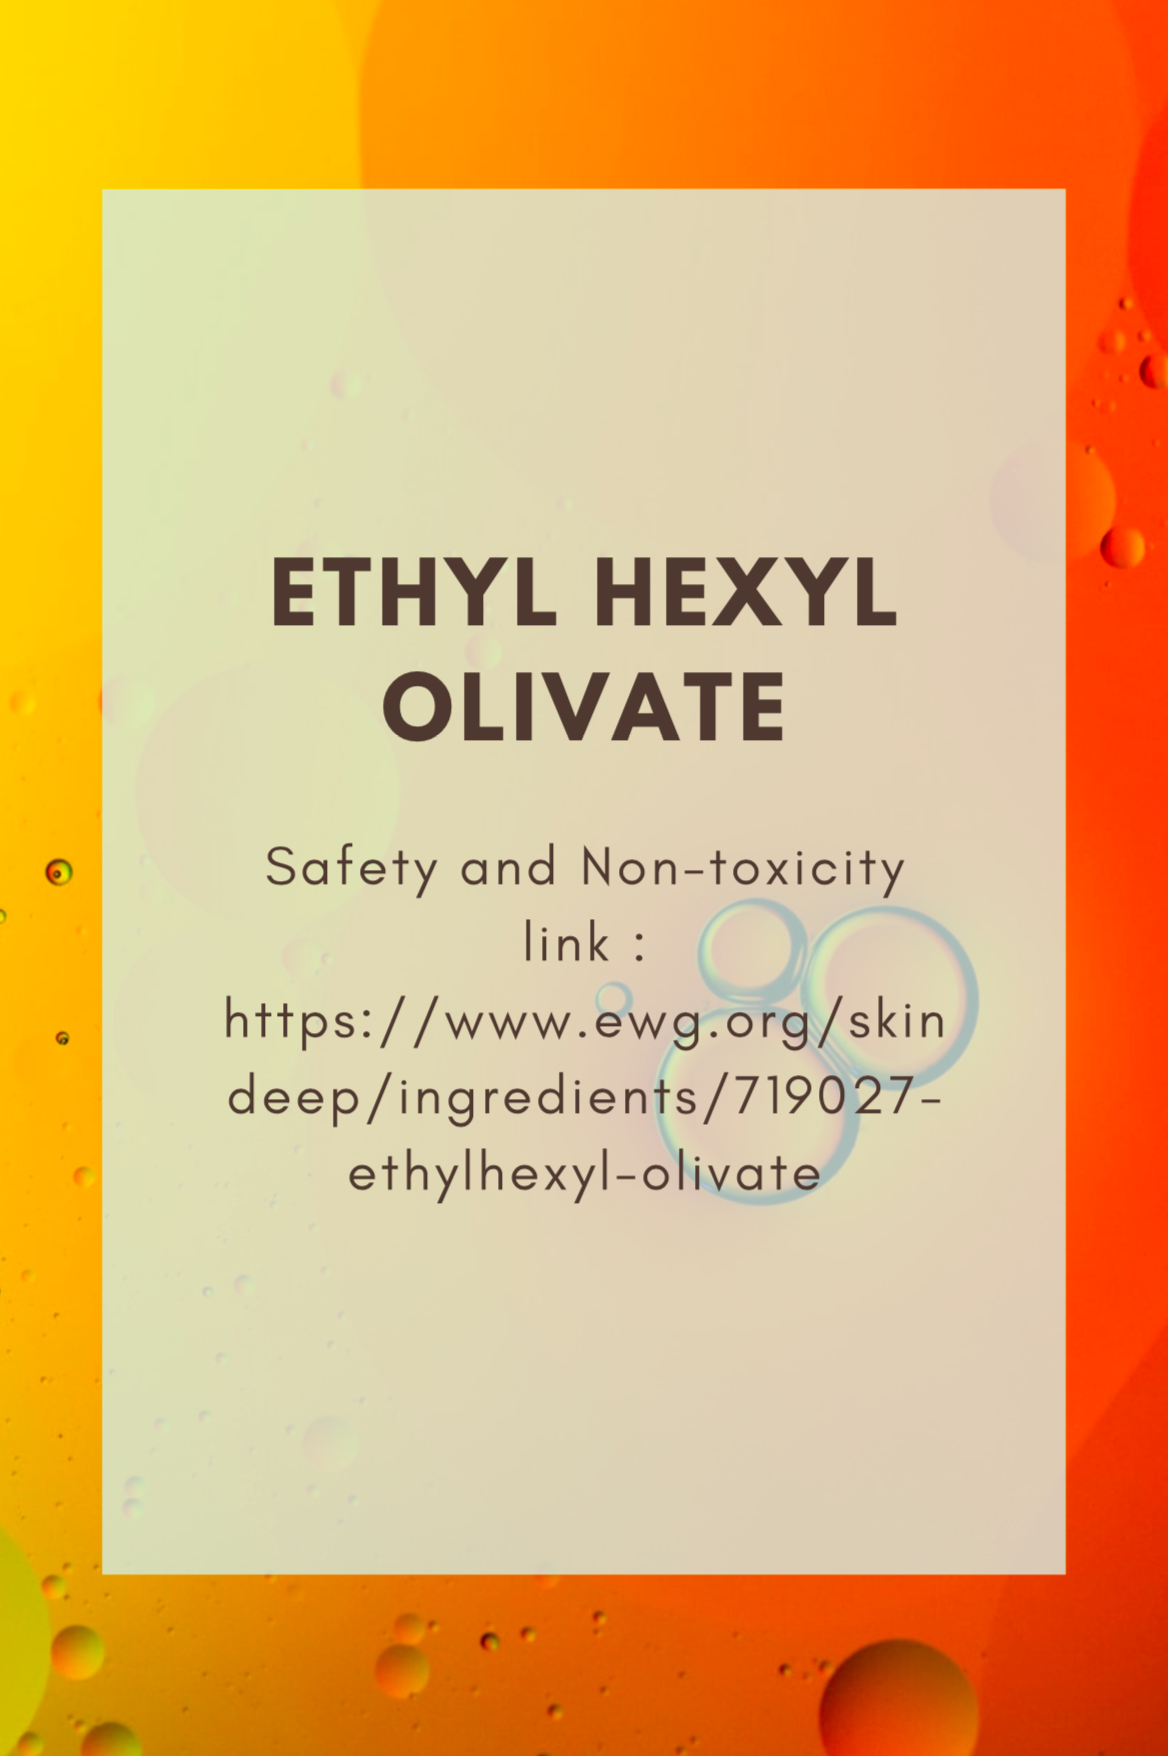 Ethylhexyl Olivate